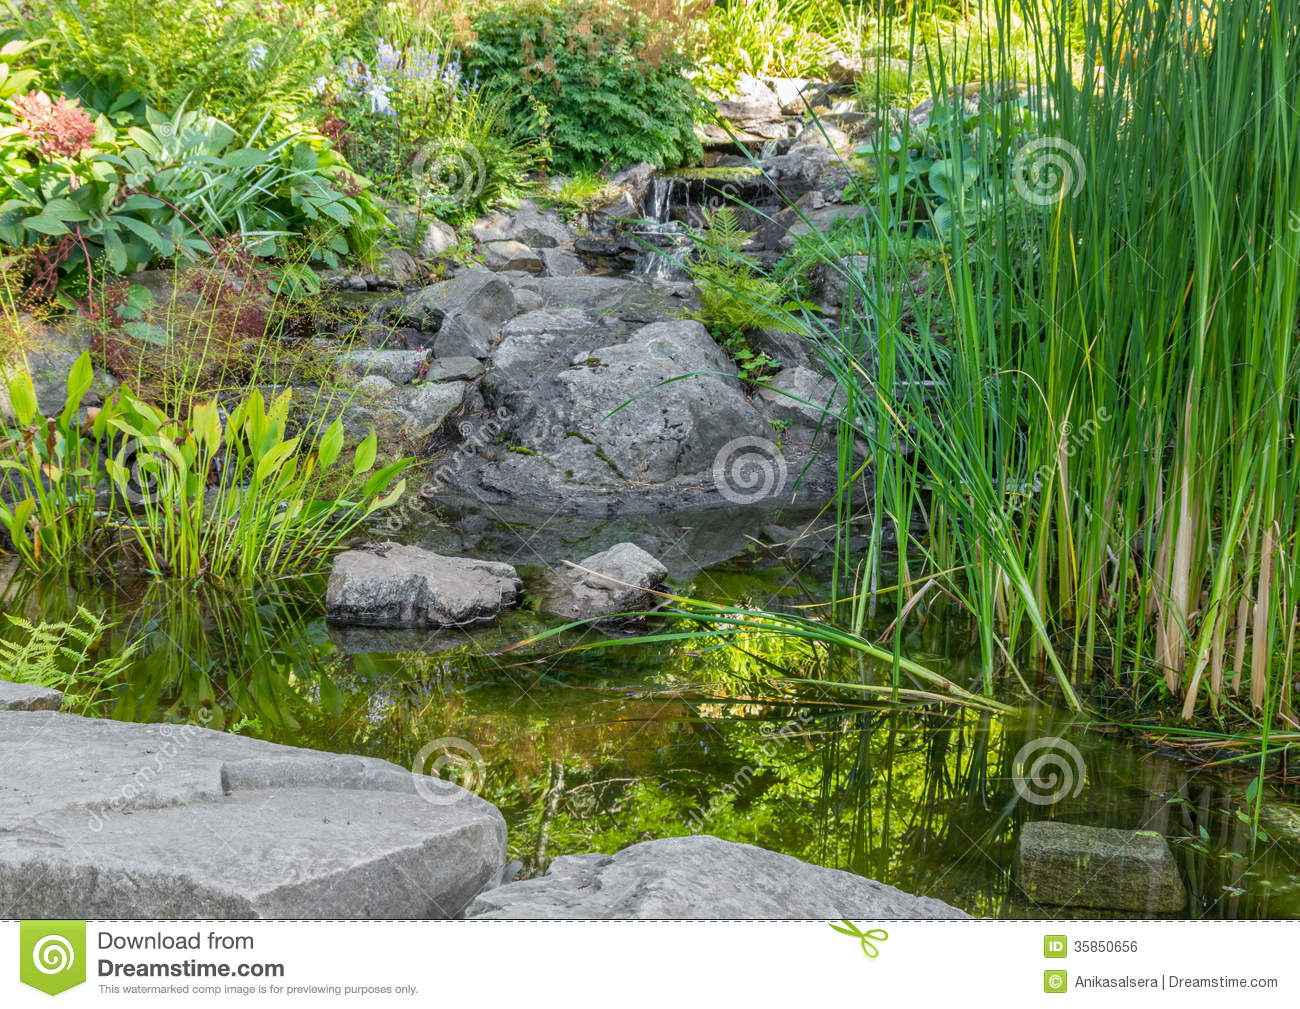 Garden With Aquatic Plants Pond And Decorative Stones Royalty – Garden Decorative Stones